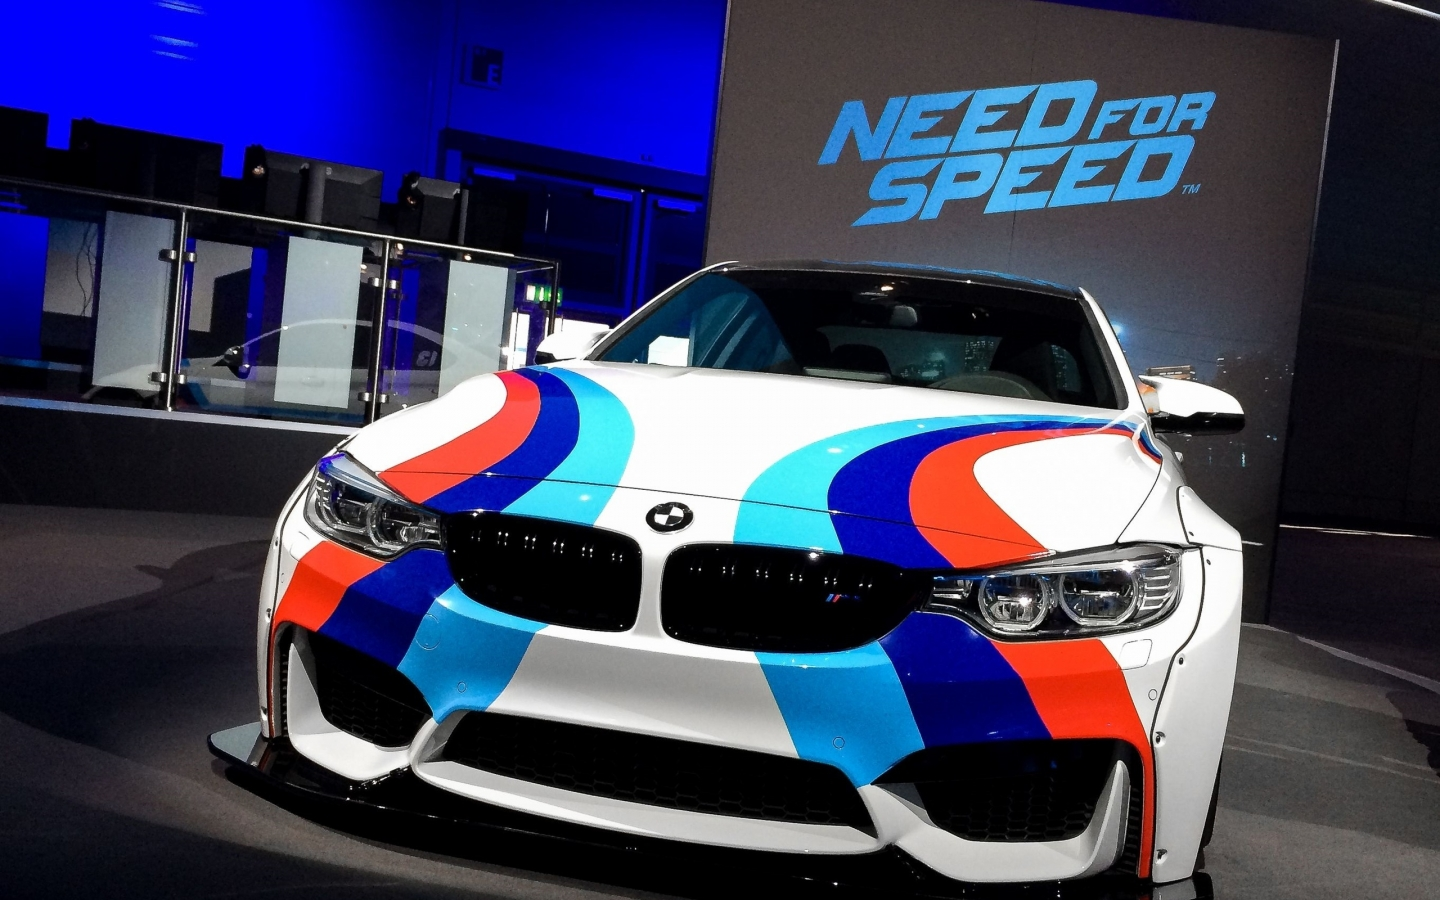 Need For Speed BMW for 1440 x 900 widescreen resolution